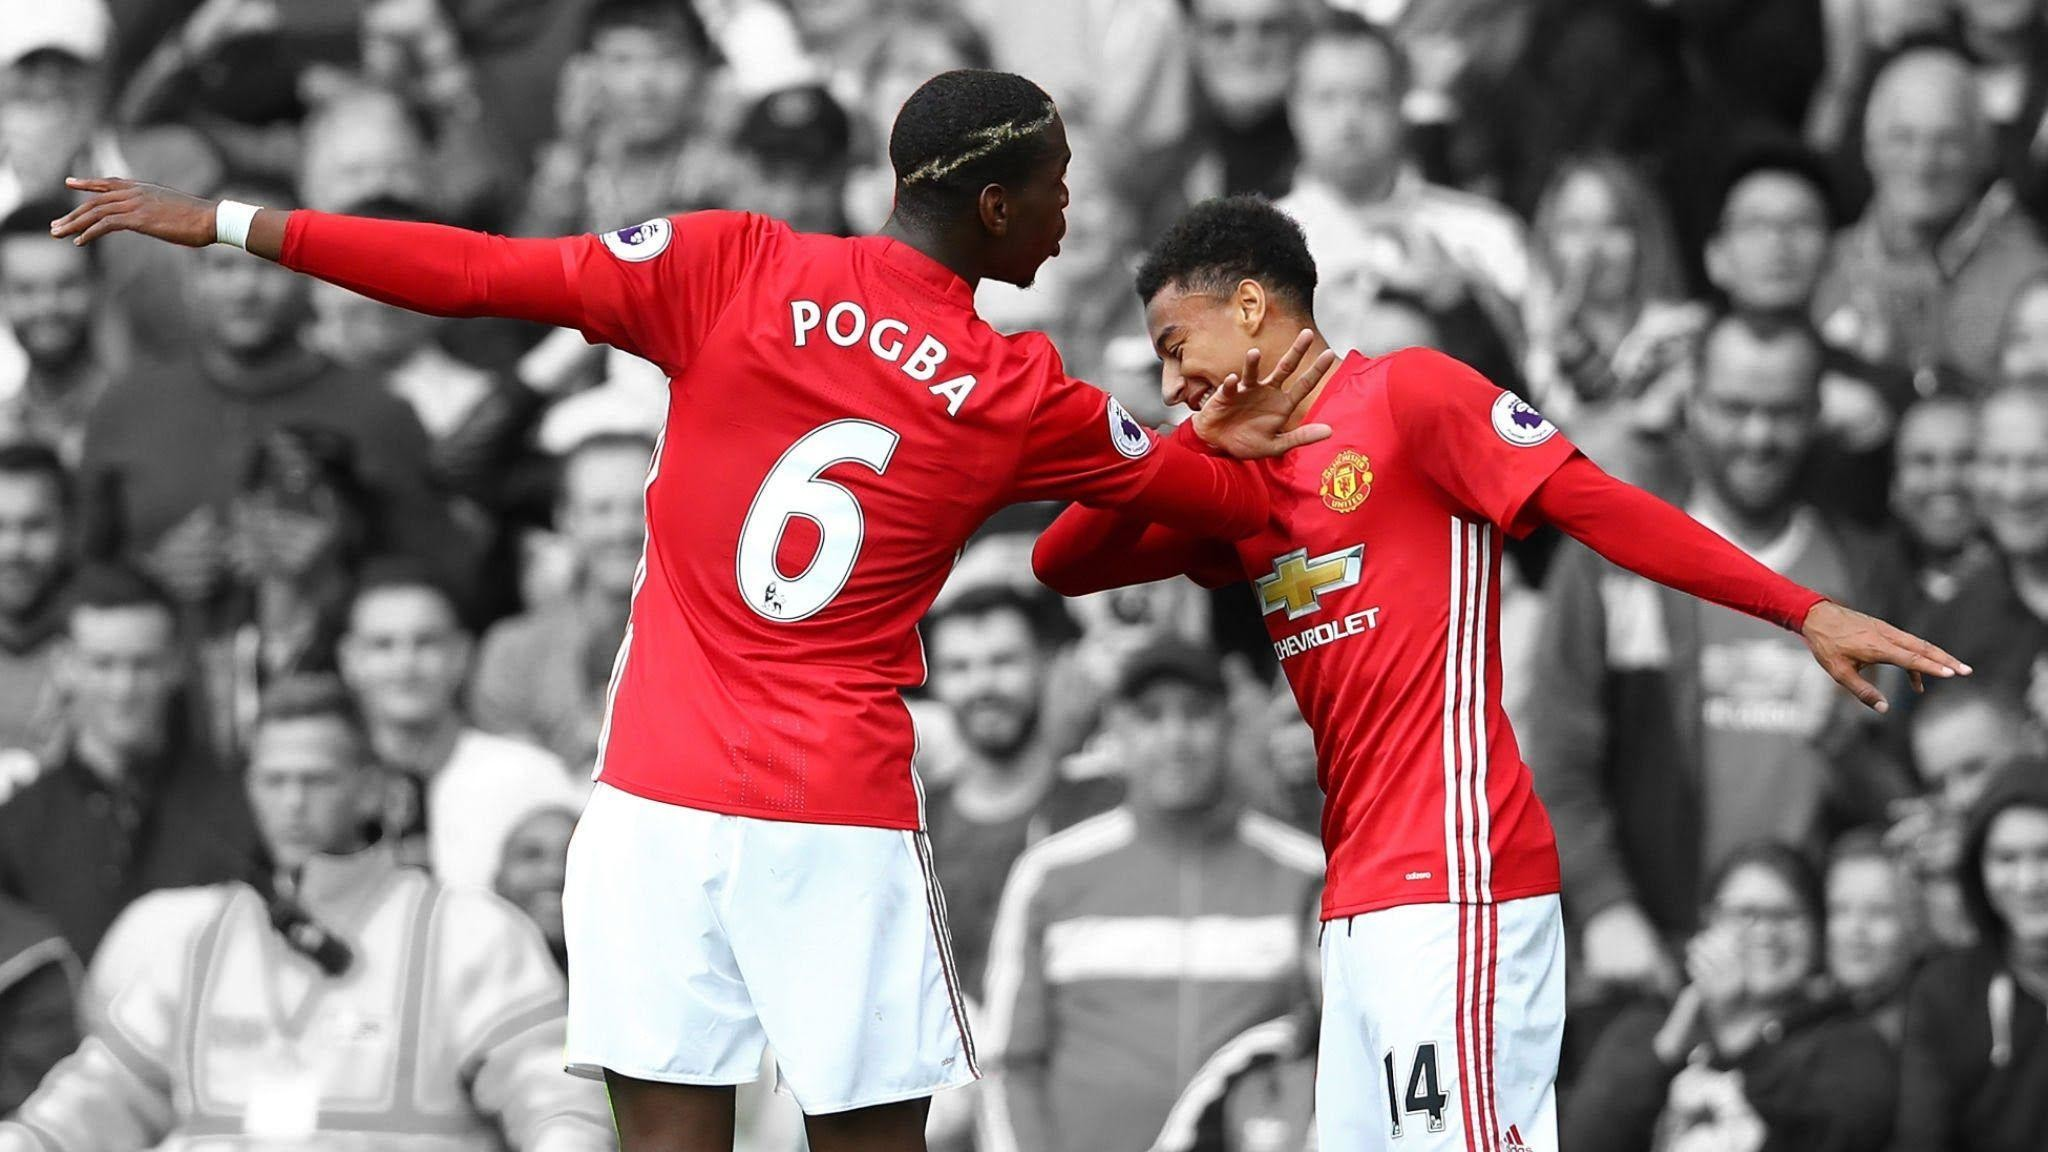 Res: 2048x1152, Paul Pogba vs Jesse Lingard - The Best Duo - Best Goals Skill .